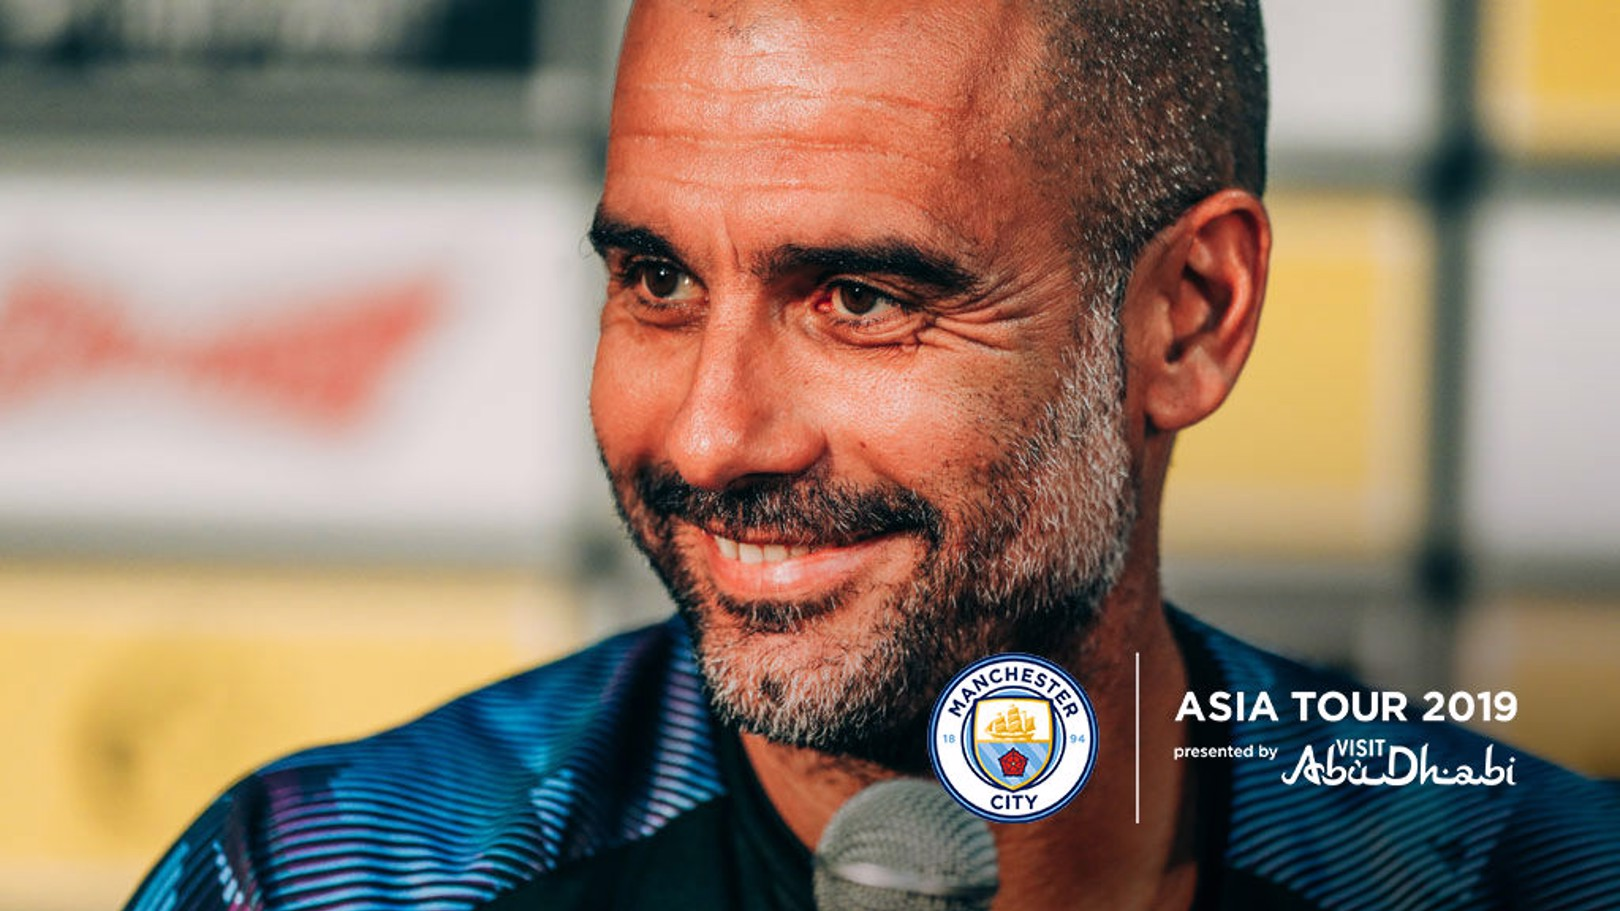 PEP TALK: The boss faced the press ahead of tomorrow's game against Yokohama F. Marinos